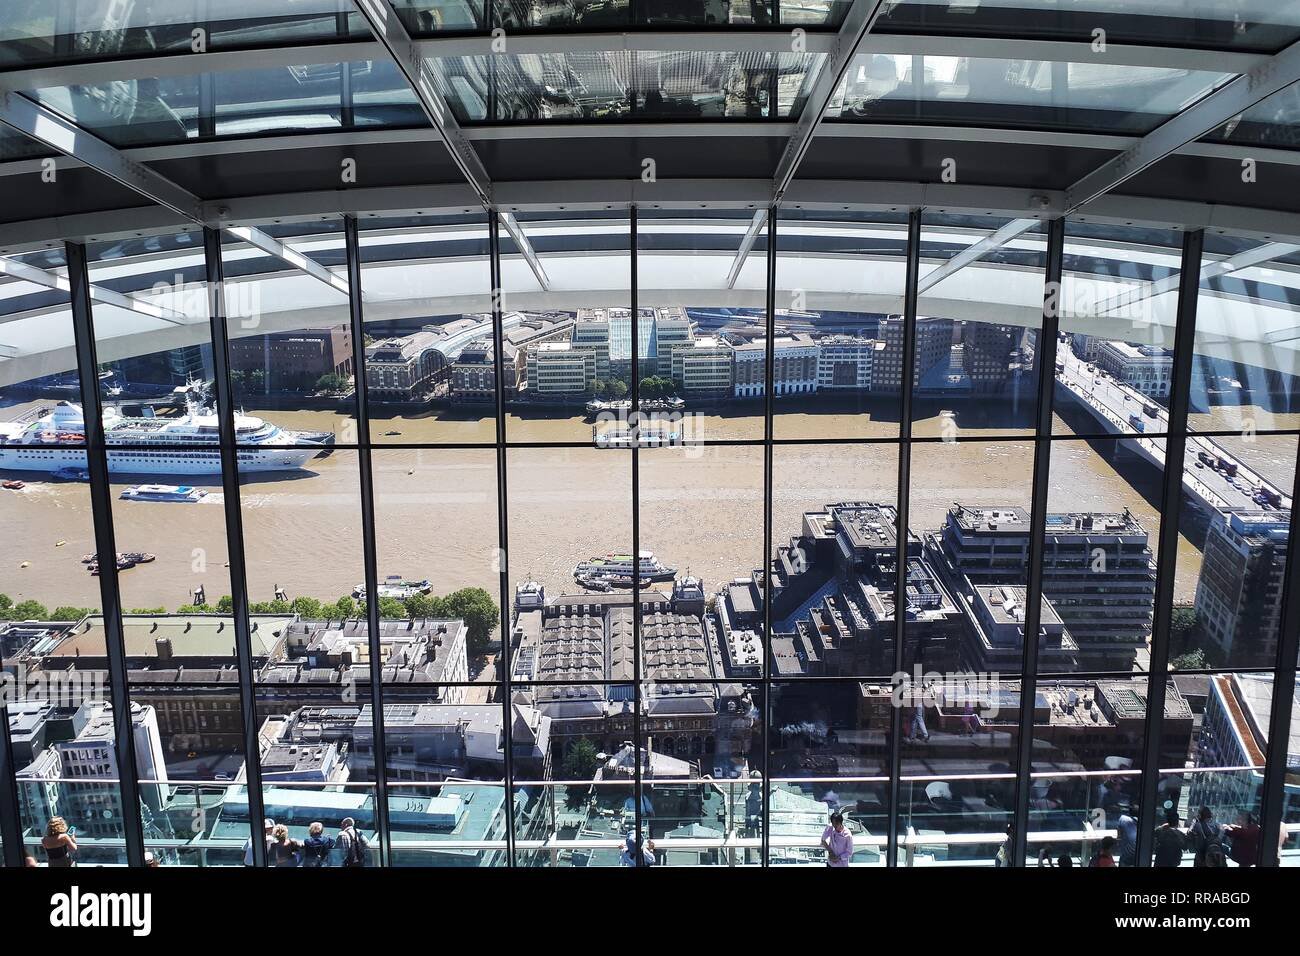 River Thames viewed from the roof garden at The Sky Garden, London  Picture by Antony Thompson - Thousand Word Media, NO SALES, NO SYNDICATION after p - Stock Image